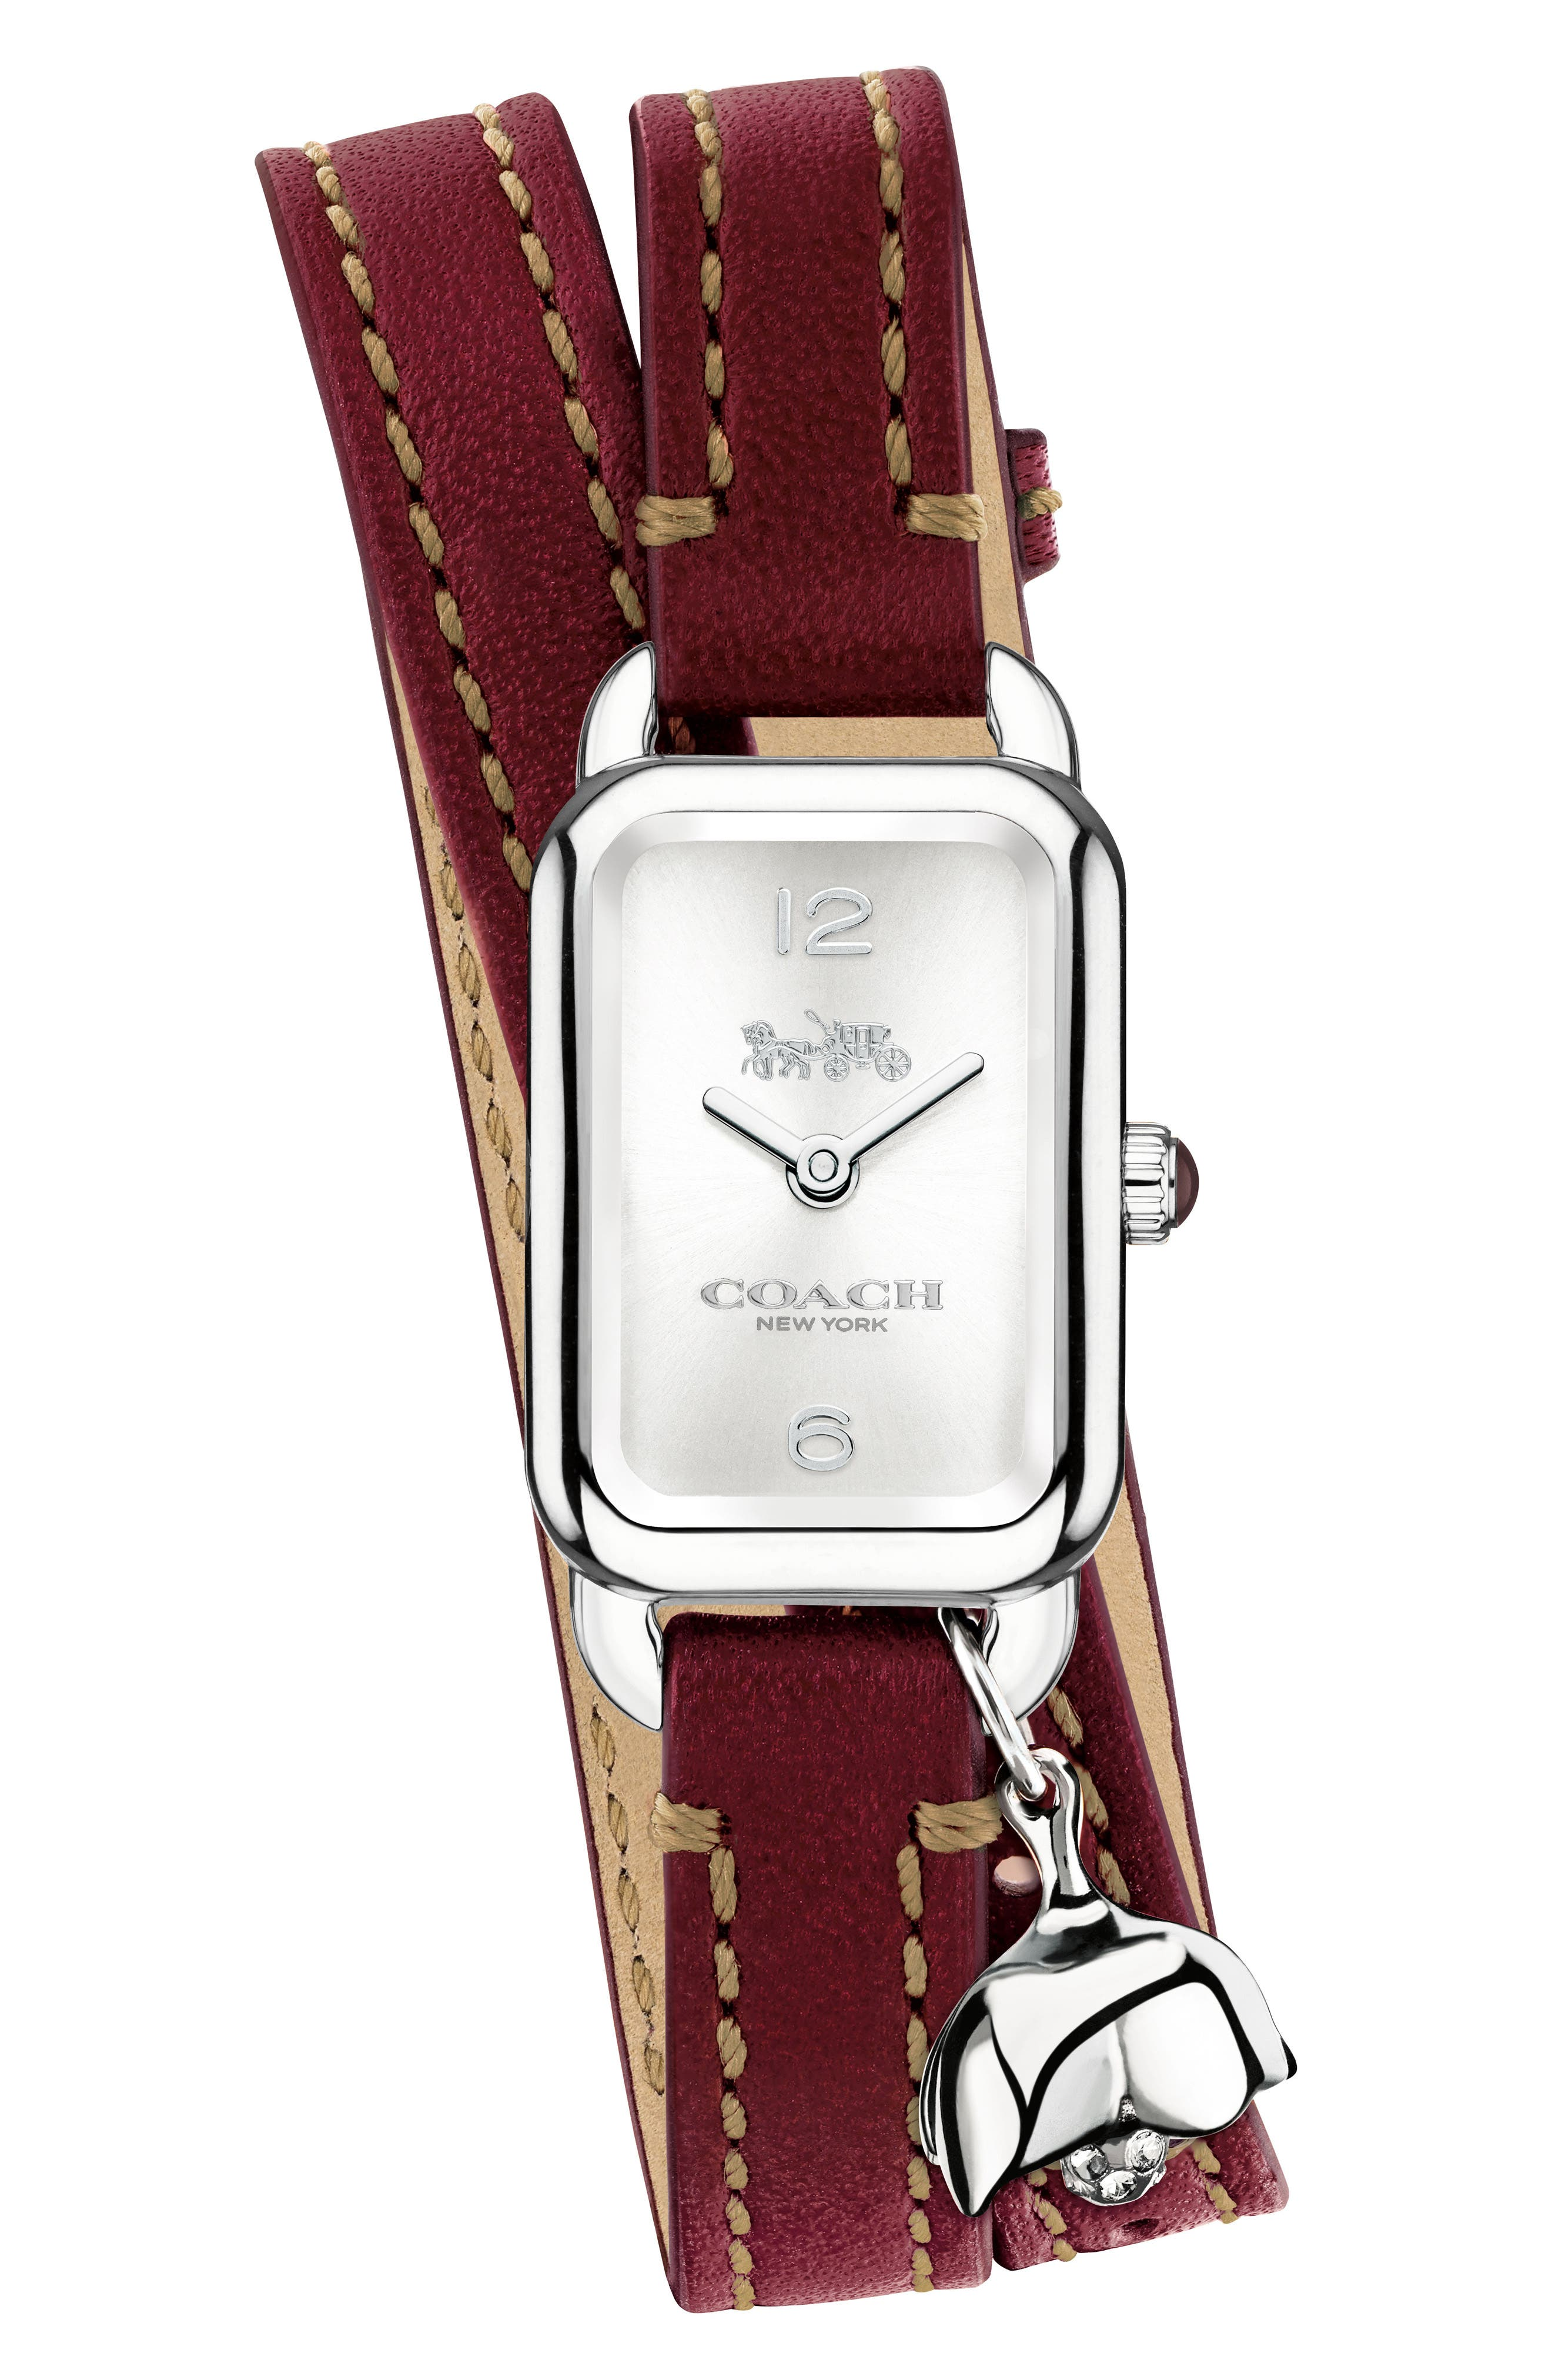 Main Image - COACH Ludlow Double Wrap Leather Strap Watch, 17mm x 24mm